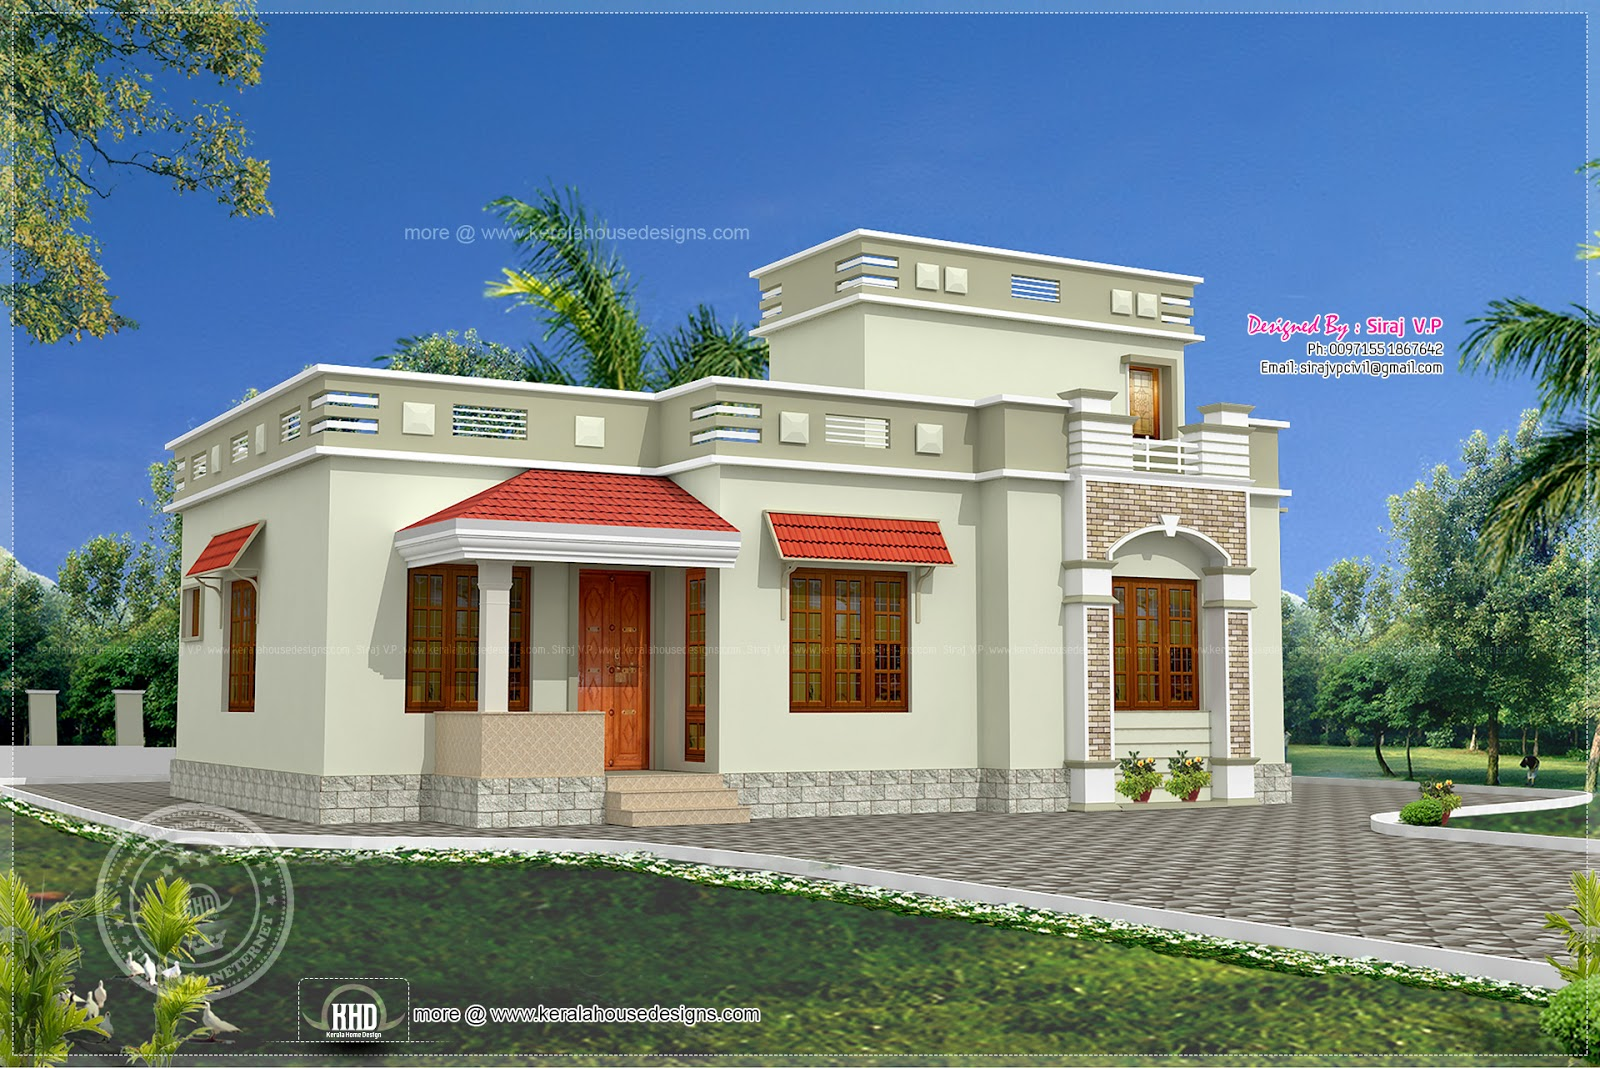 Low Budget Kerala Style Home In 1075 House Design Plans: low budget home design ideas